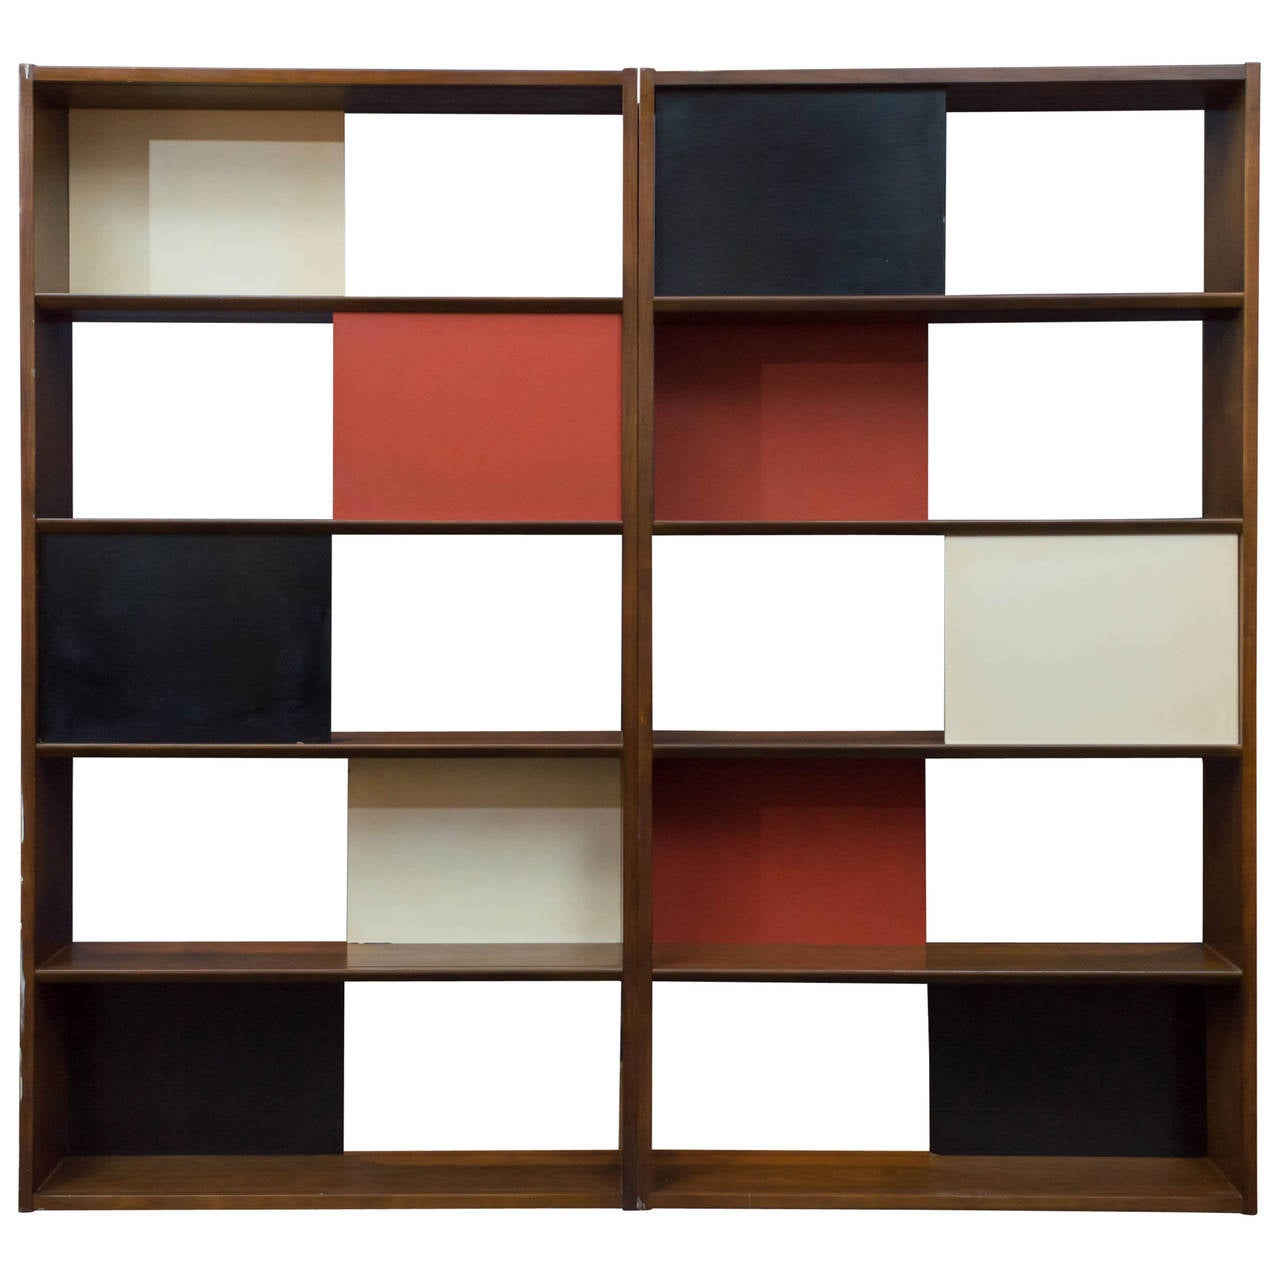 Room divider or bookcase by evans clark for glenn at 1stdibs - Bookshelves as room divider ...